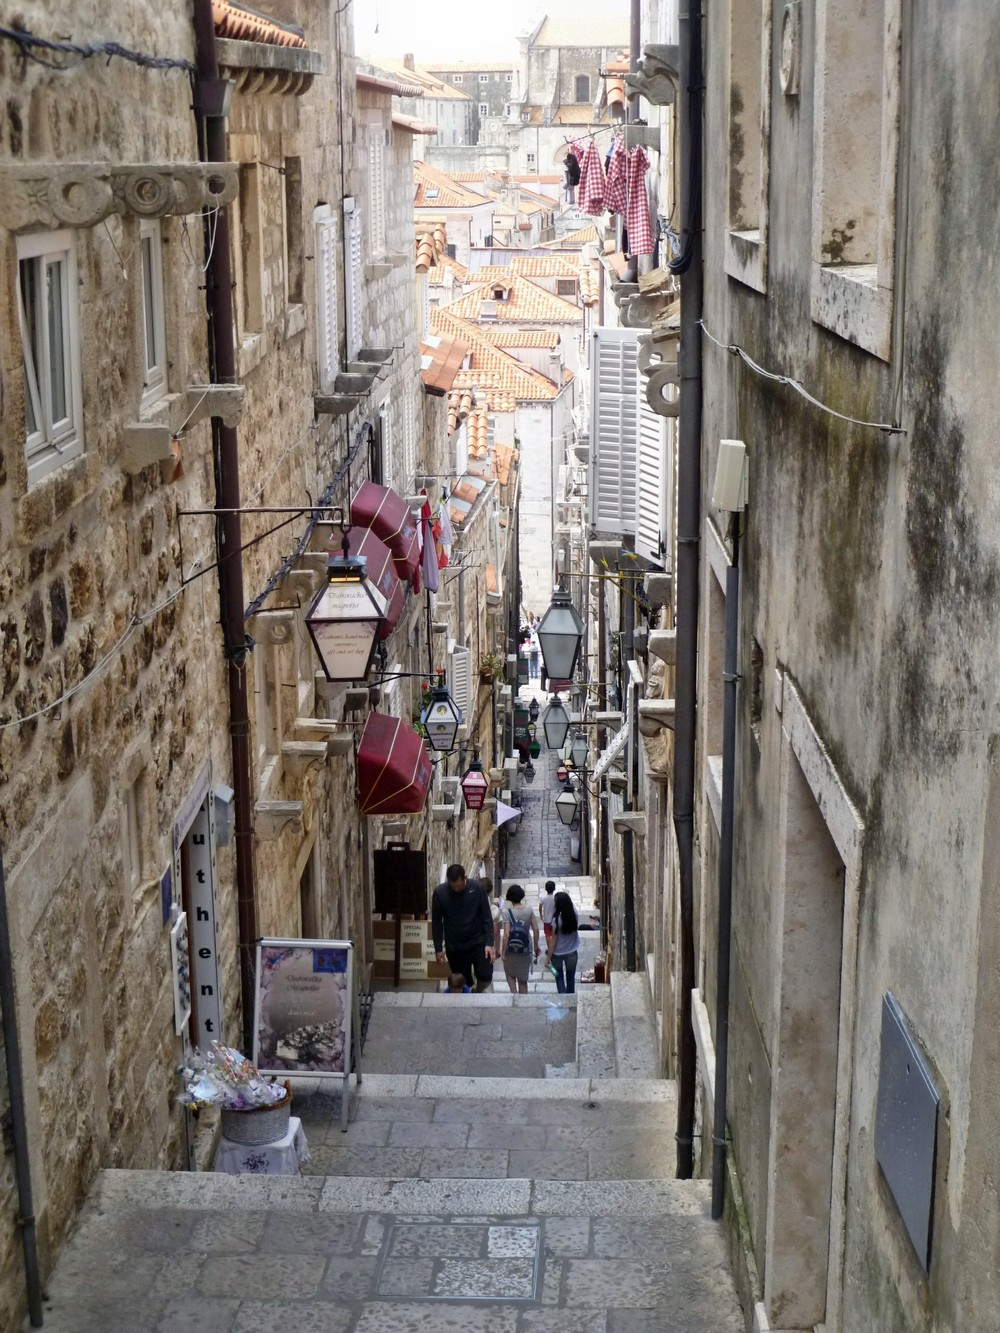 Dubrovnik has a network of backstreets that house some of the most atmospheric restaurants and bars in the city. Image credit:  JoJan / Creative Commons